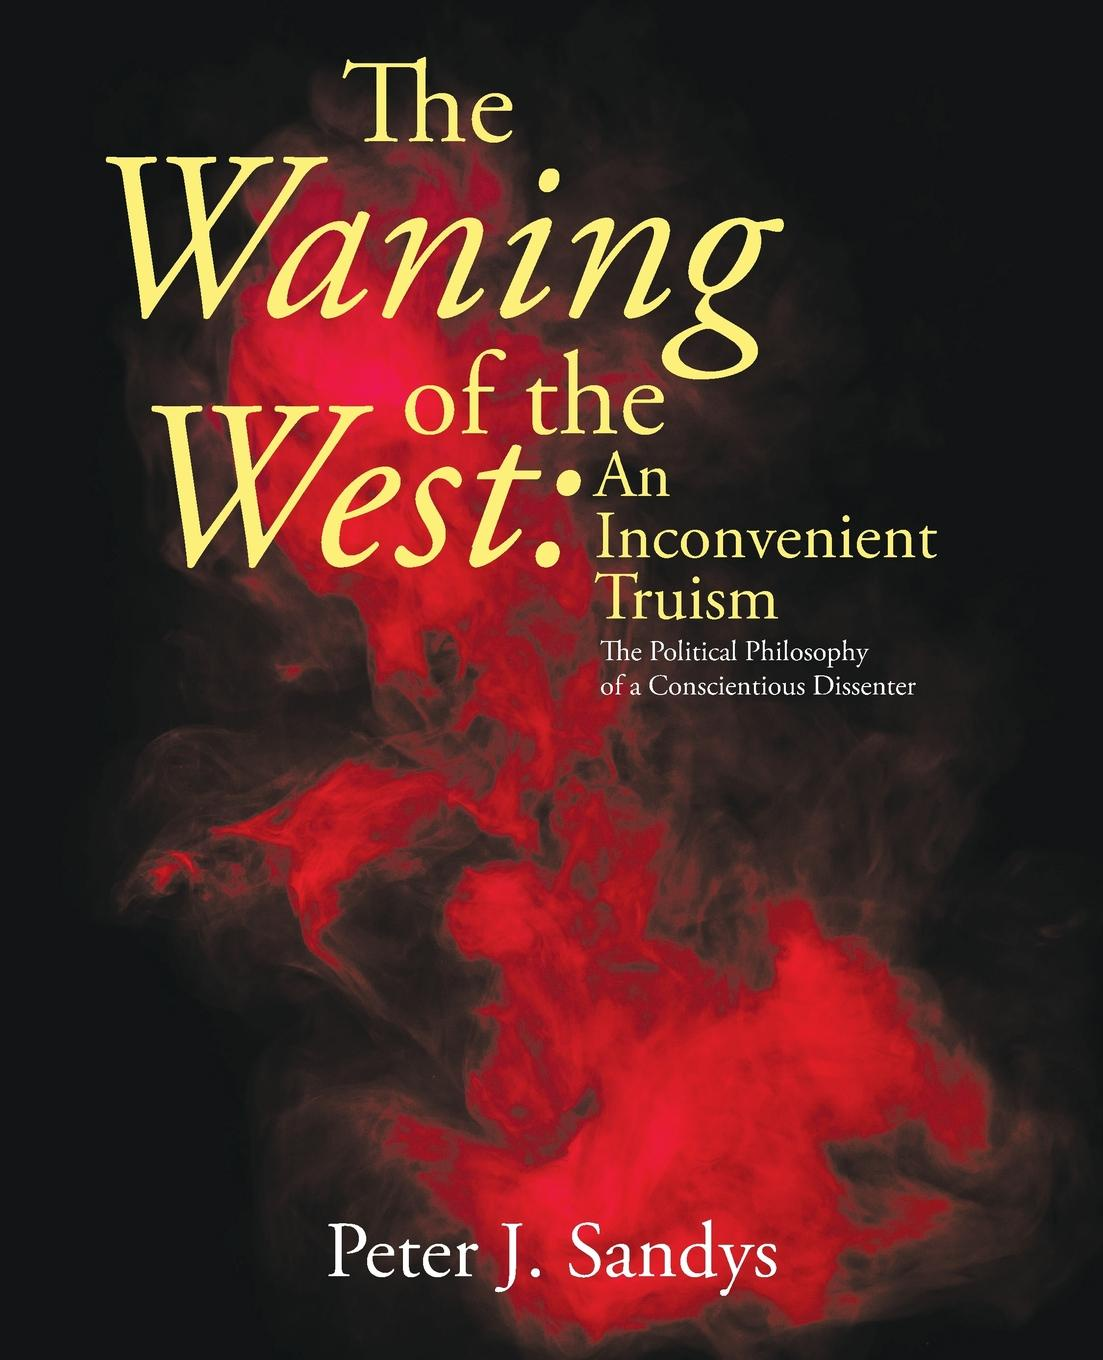 Фото - Peter J. Sandys The Waning of the West. an Inconvenient Truism: The Political Philosophy of a Conscientious Dissenter peter brown the rise of western christendom triumph and diversity a d 200 1000